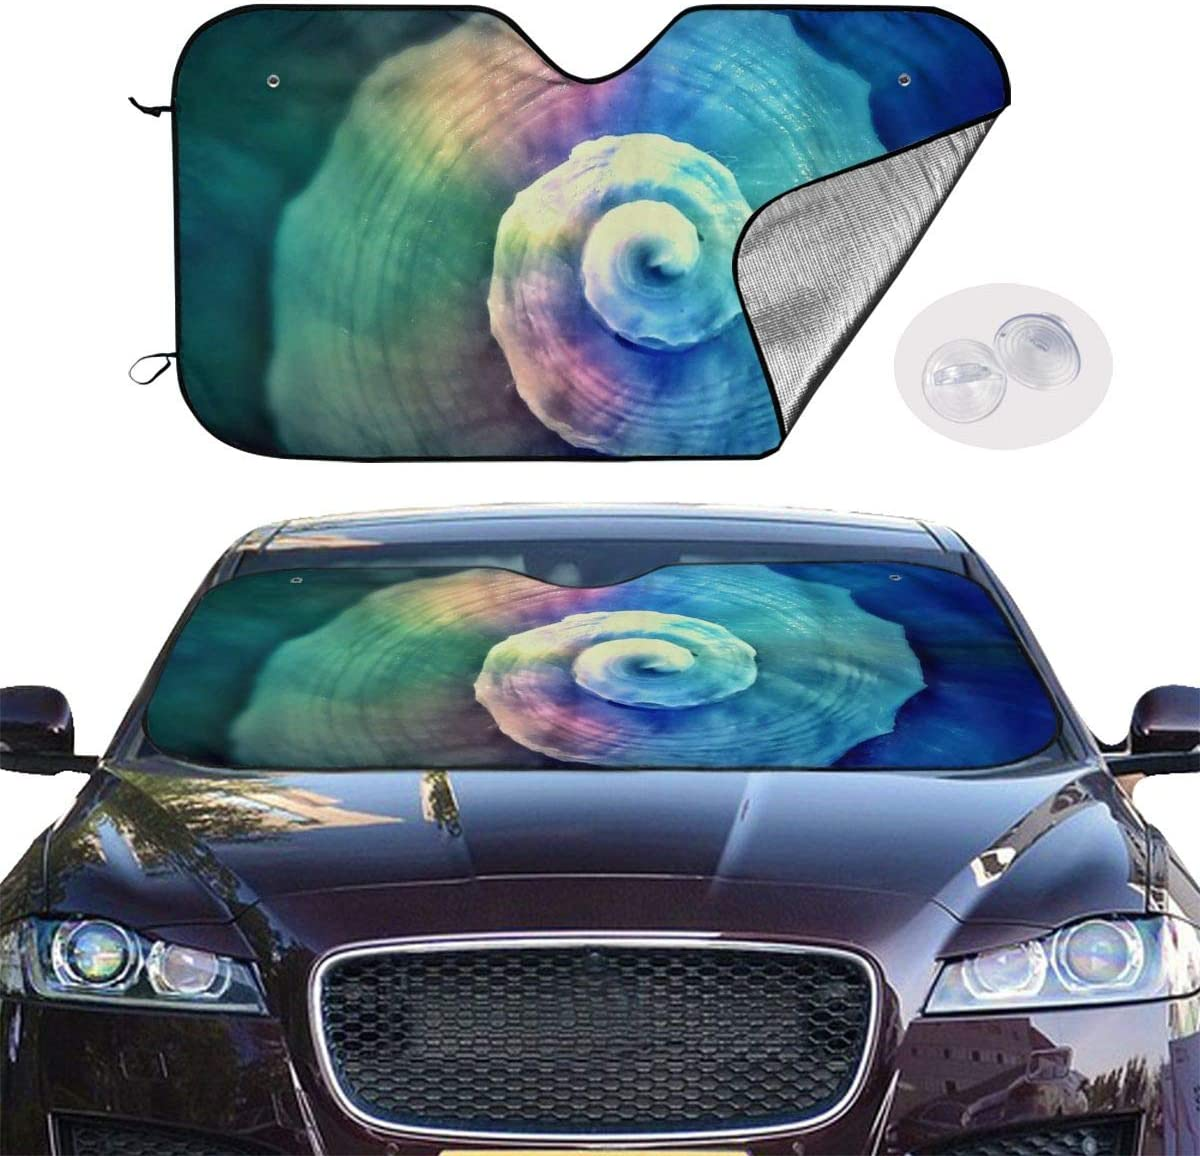 THONFIRE Car Windshields Sun Shade Fantasty Light Shell Blocks UV Rays Keeps Your Vehicle Cool Visor Protector Auto Front Window Heatshield